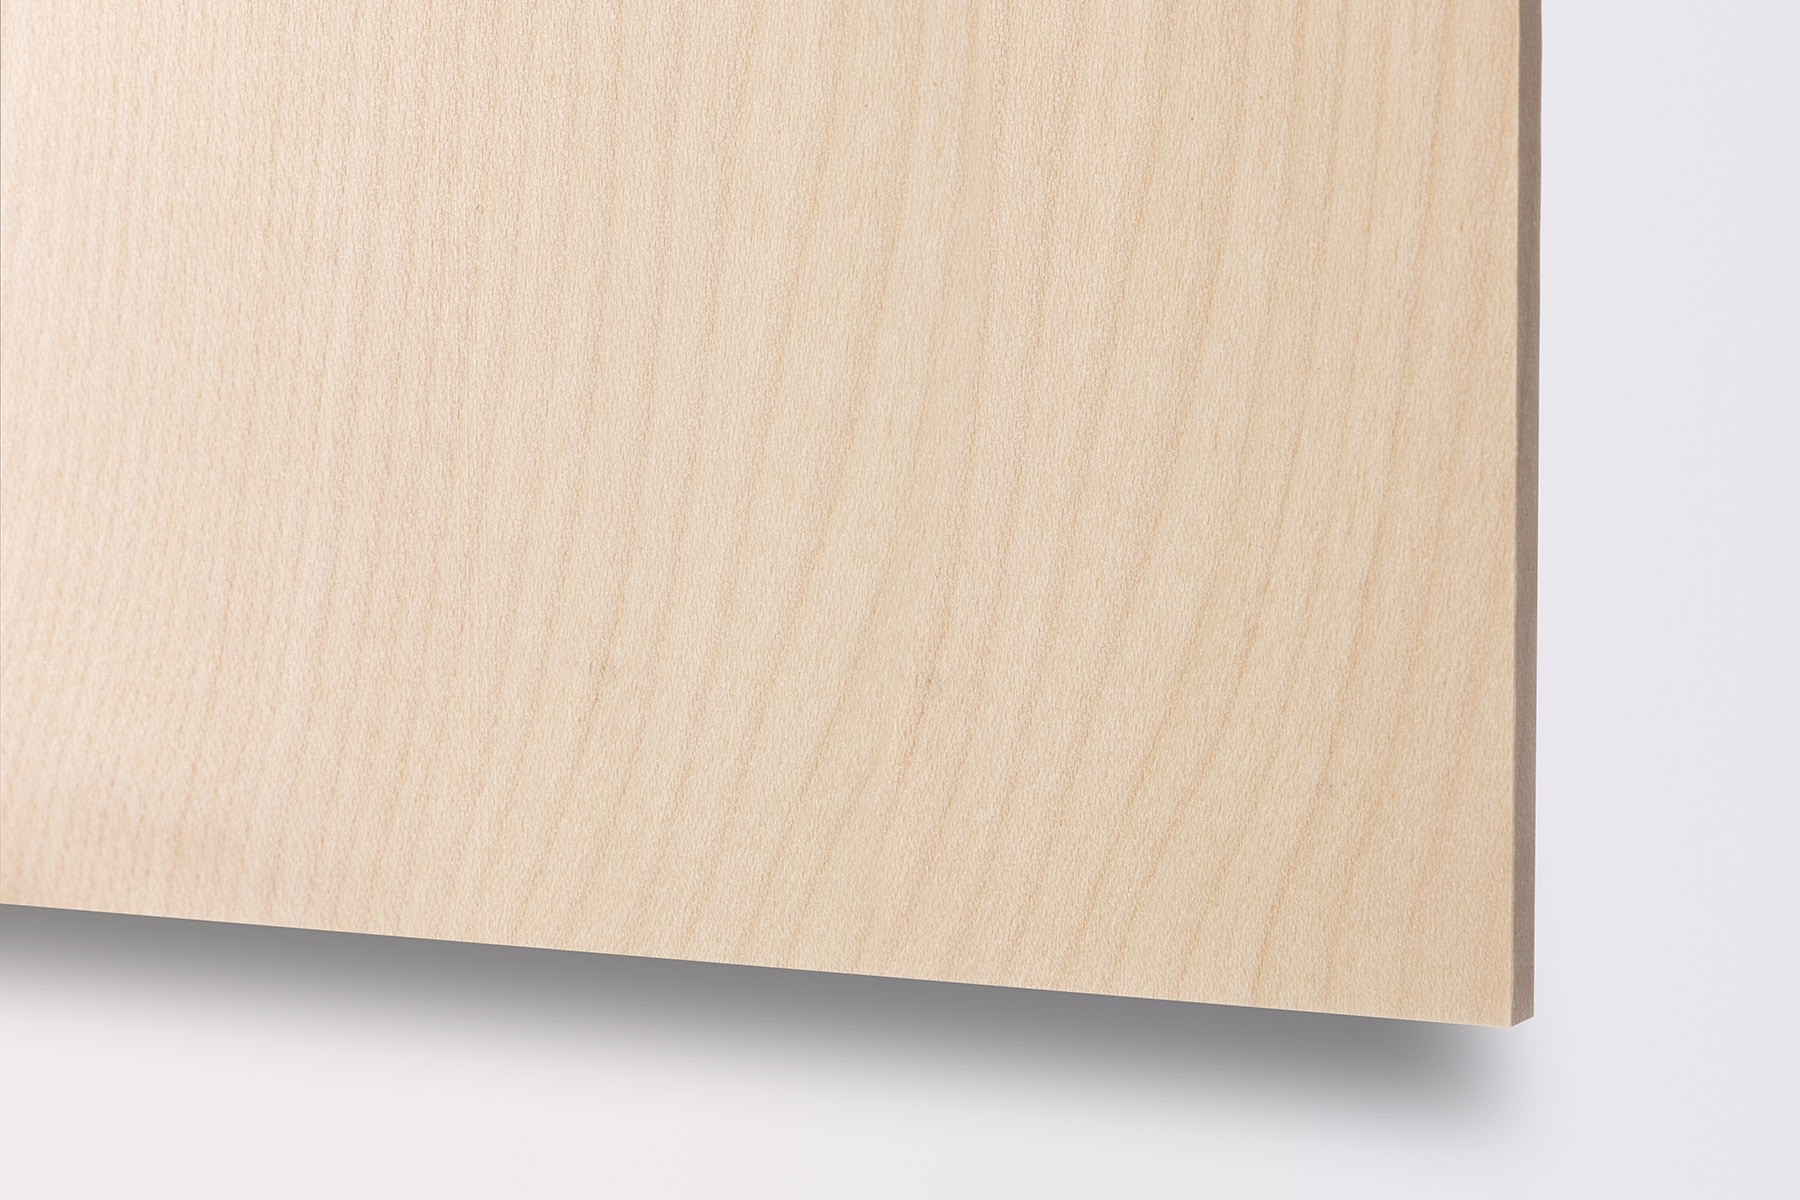 6mm Thick Wooden MDF High Quality Plain 600x300mm Sheets Boards Laser Safe